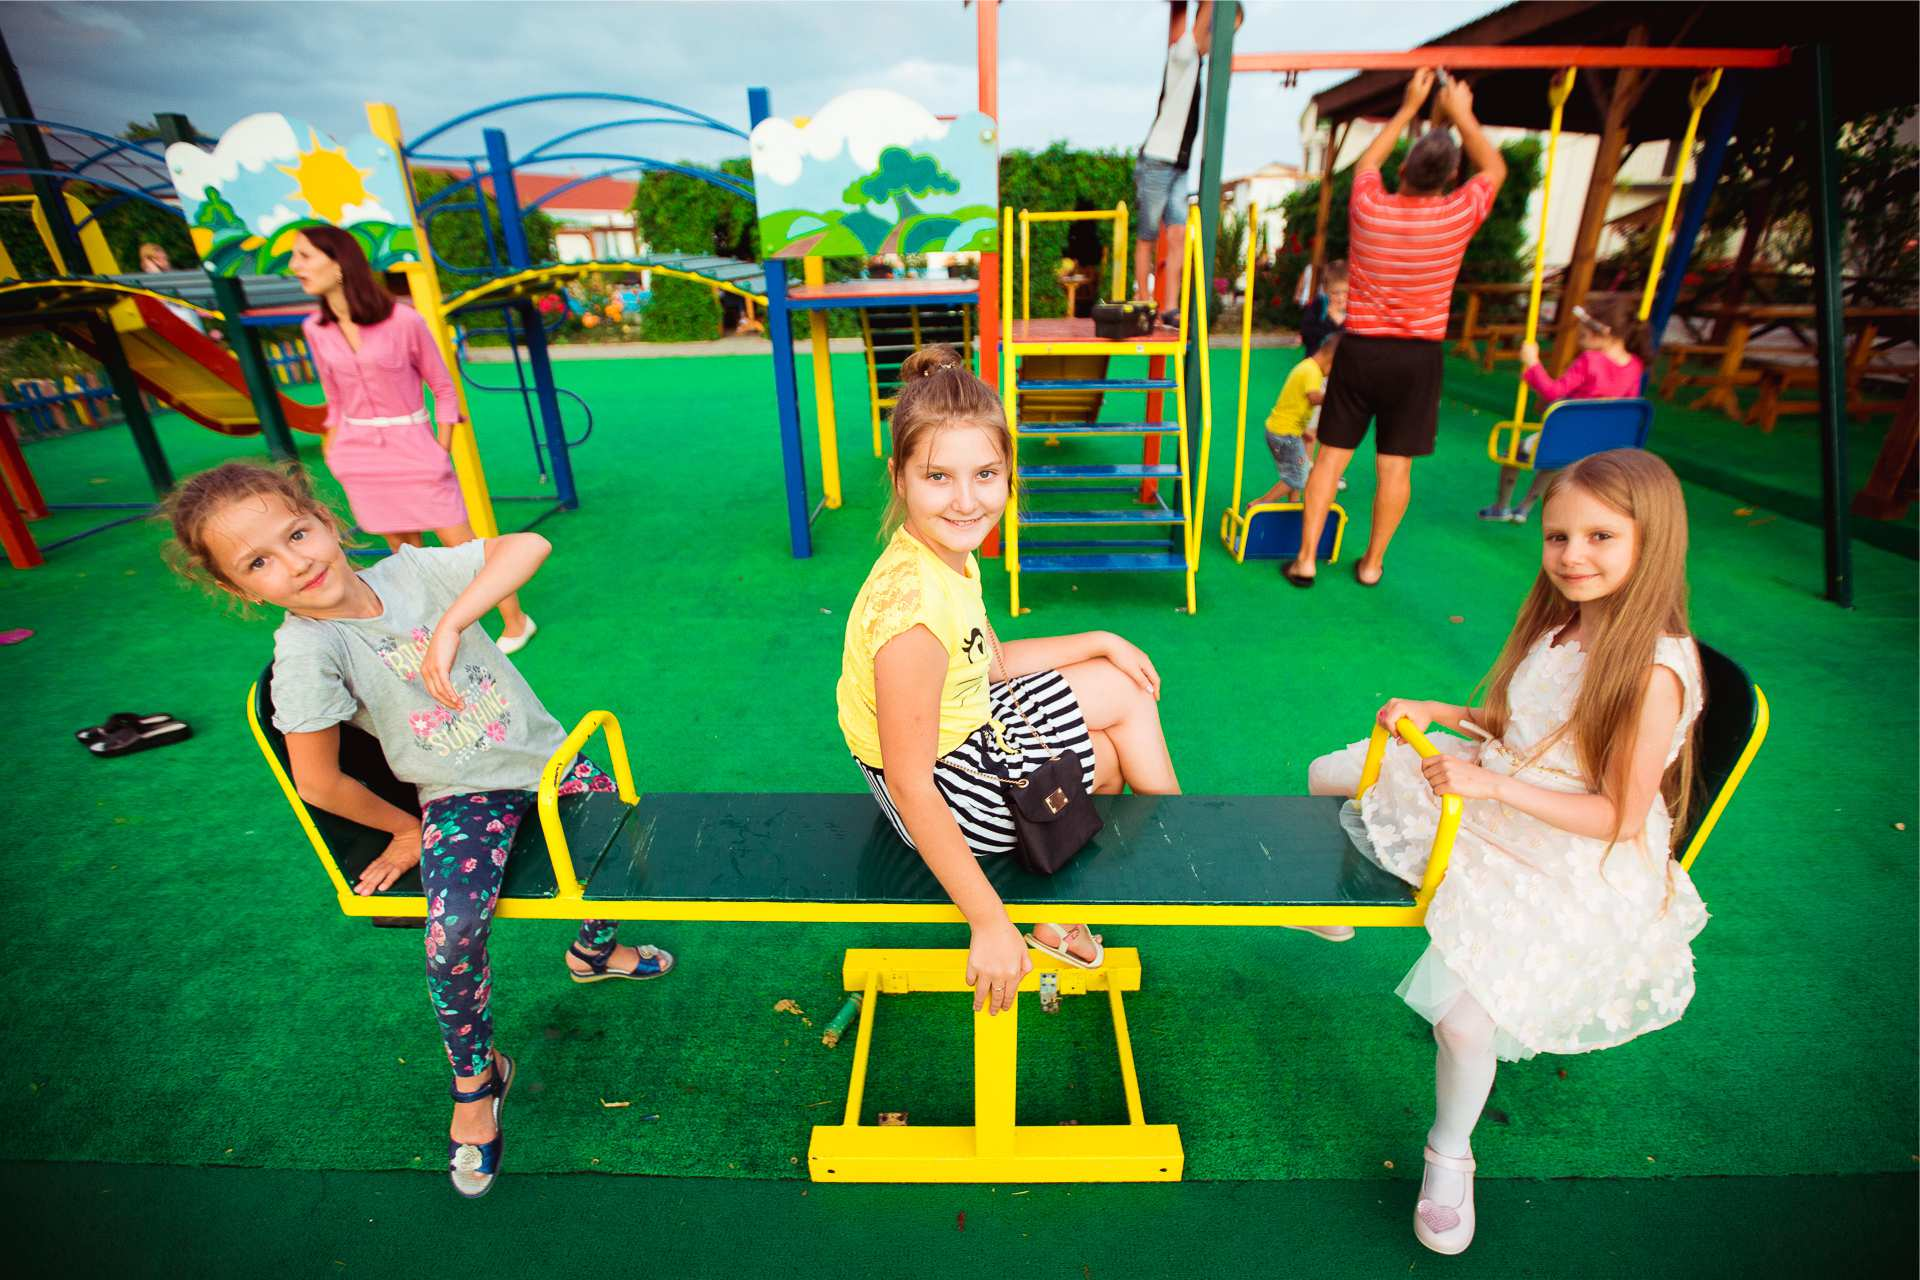 Children's Playground the hotel surroundings include